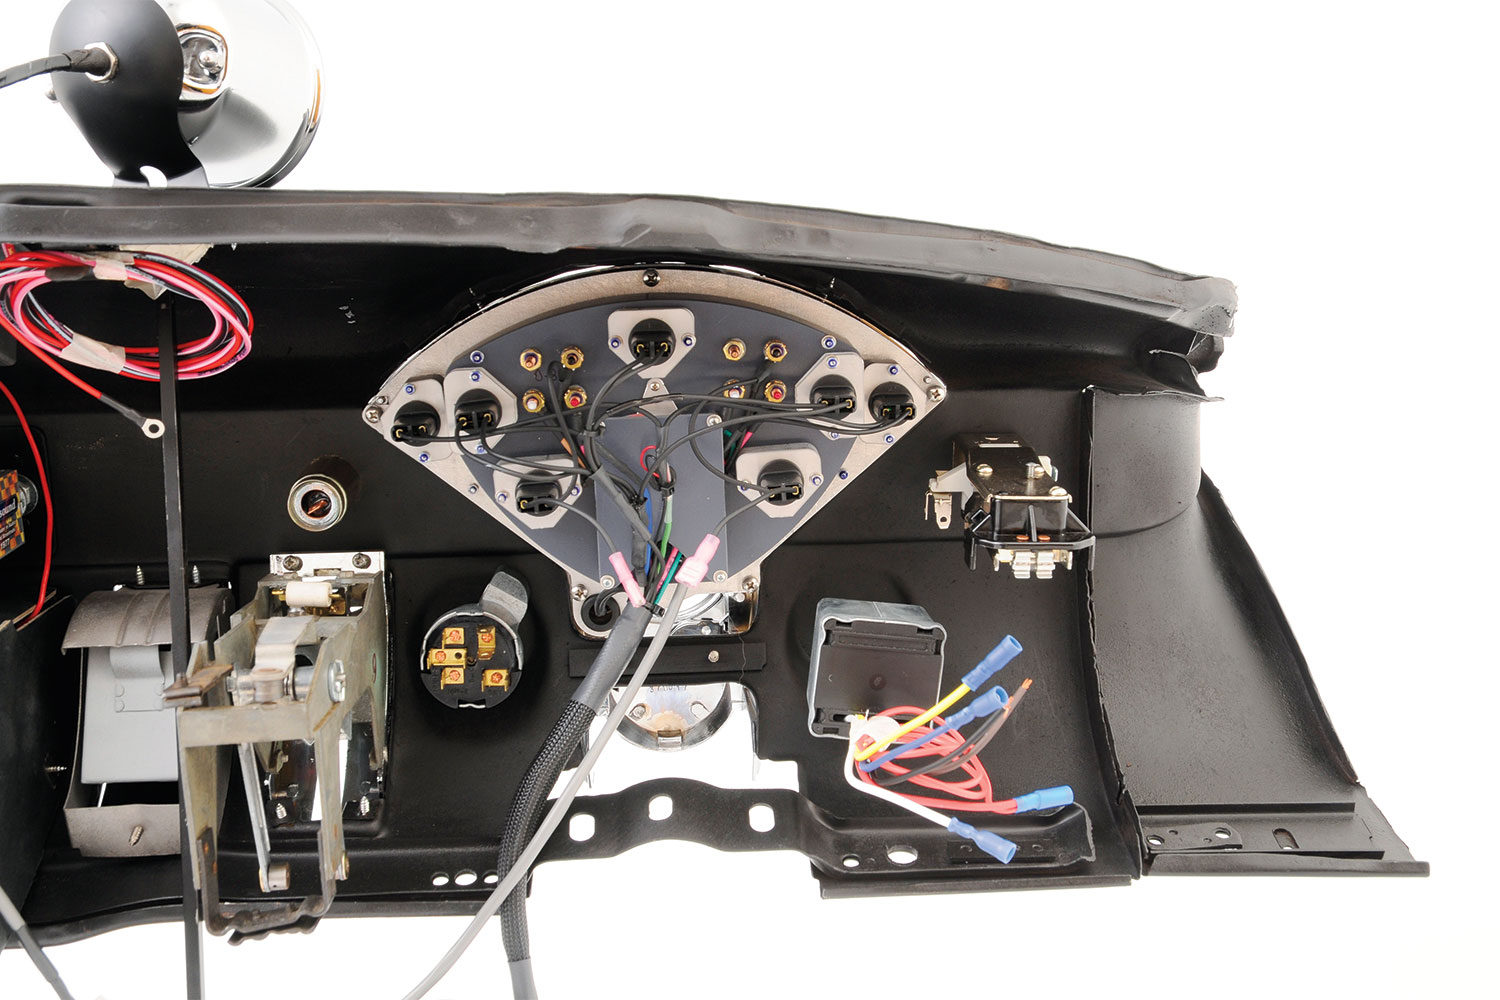 From the back side we can see the amazing quality and attention to detail that goes into the Classic Instruments gauge cluster. Once again notice how clean and simple the wiring will be with mostly plug-in components.